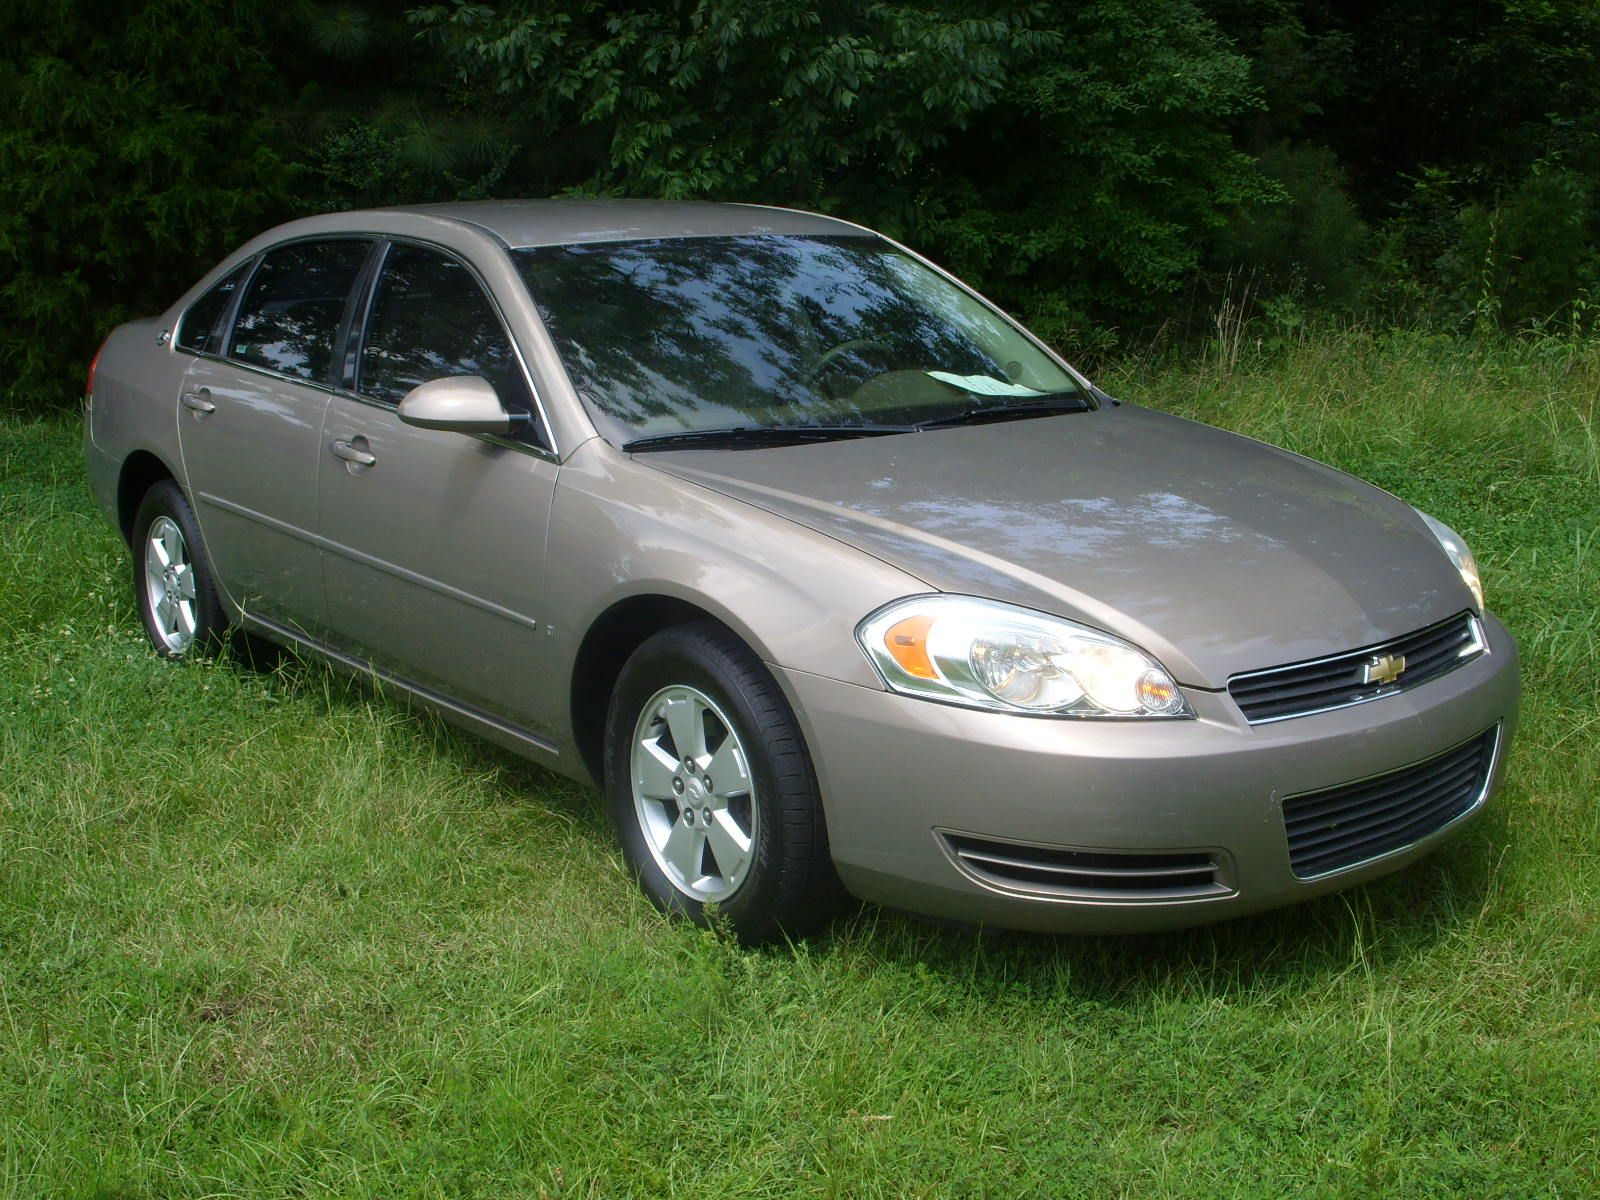 Used 2007 Chevrolet Impala LT w/3.5L For Sale | Durham NC.